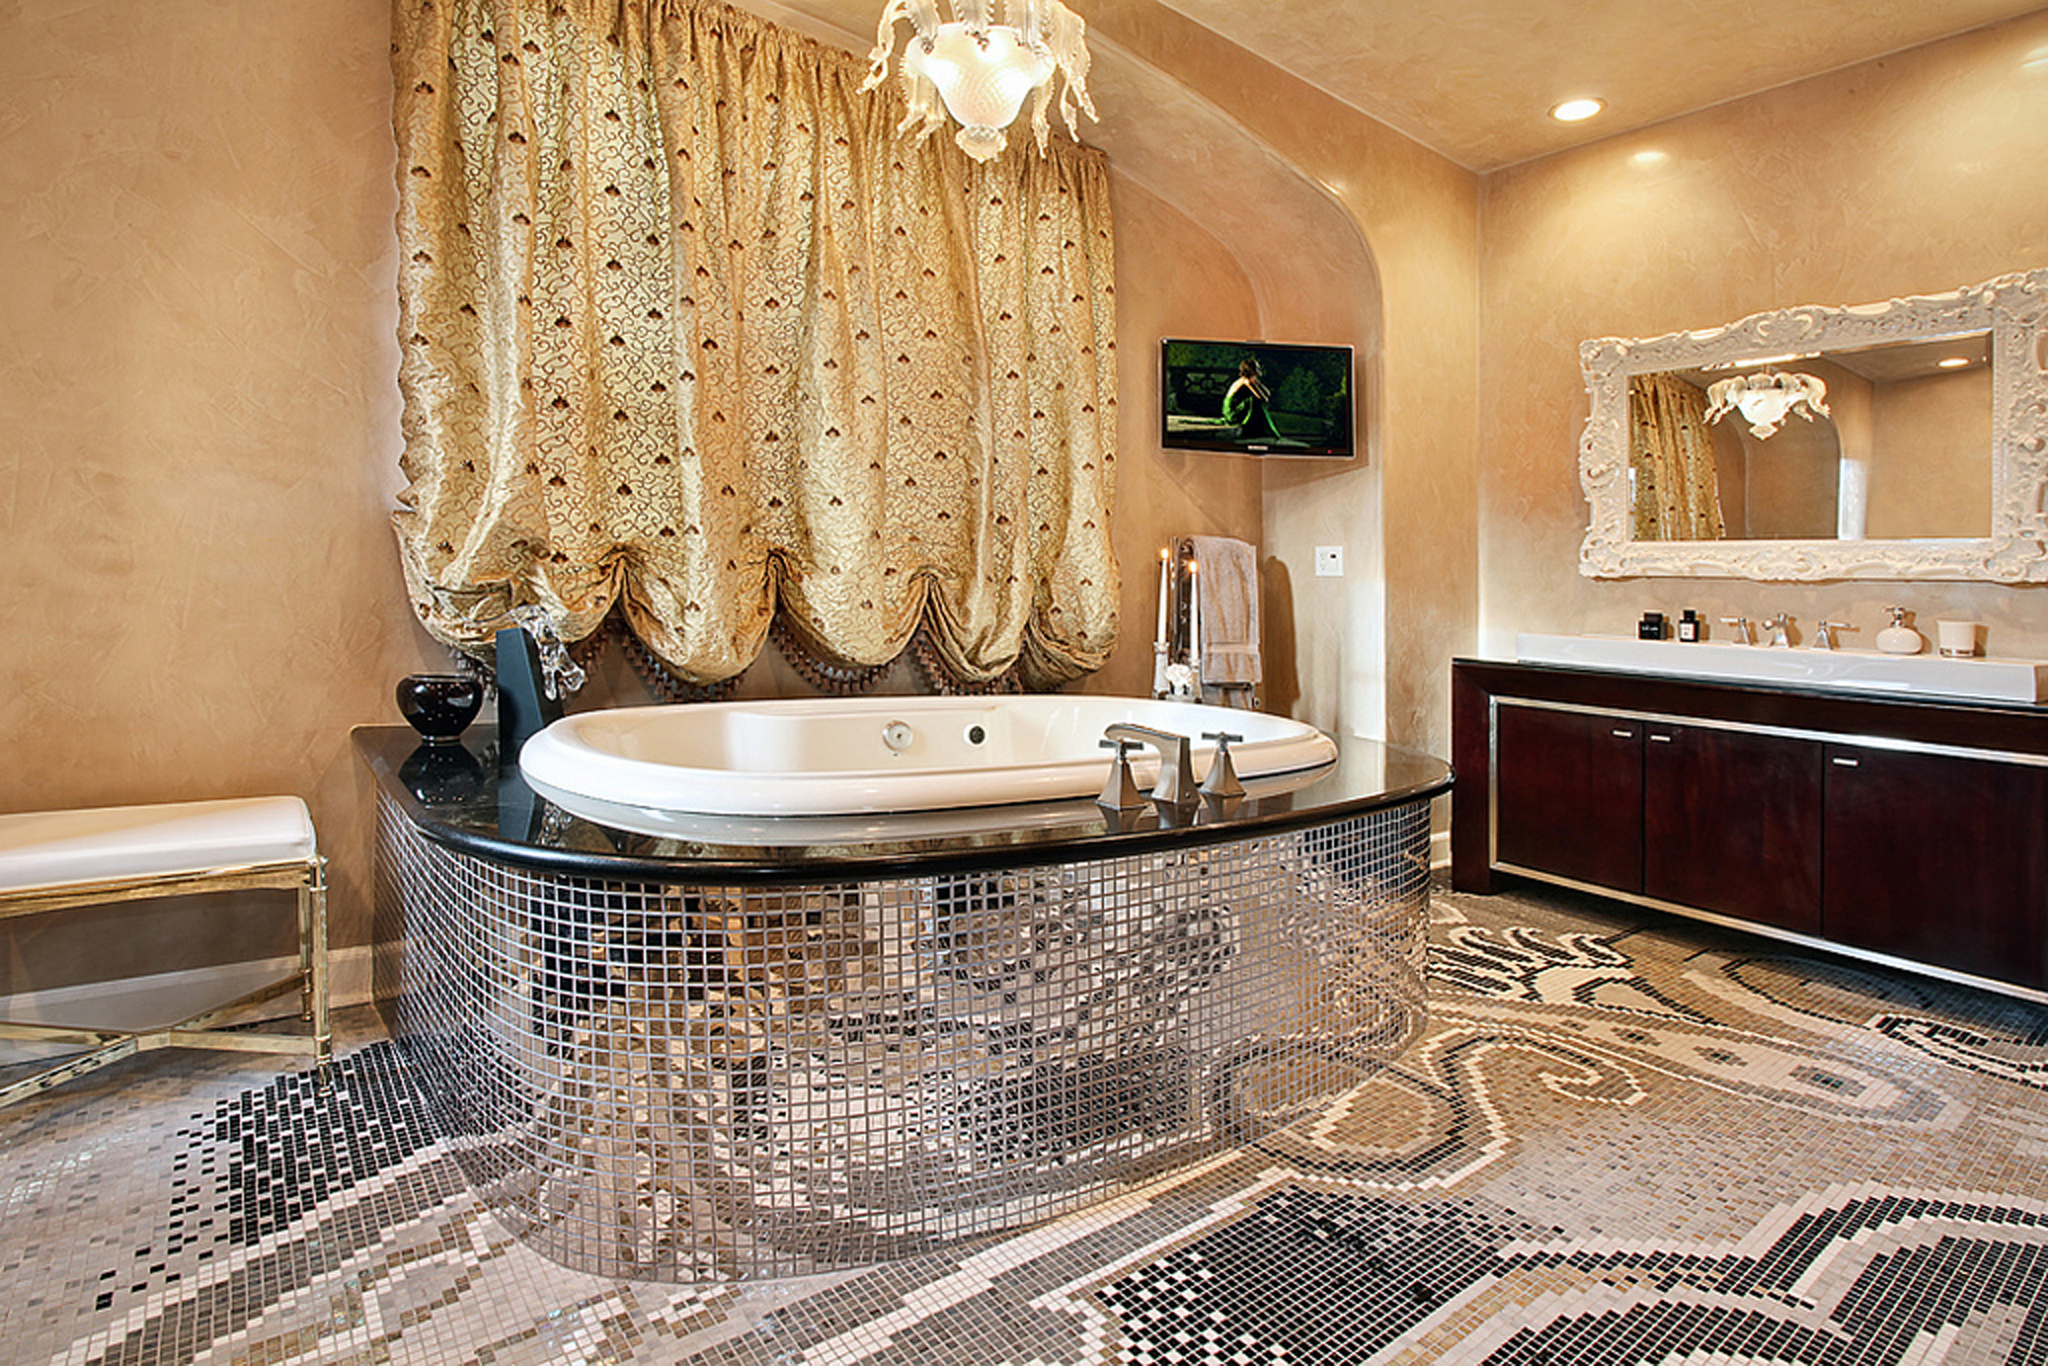 Rancho santa fe custom luxury interiors rancho santa fe for Luxury homes interior pictures